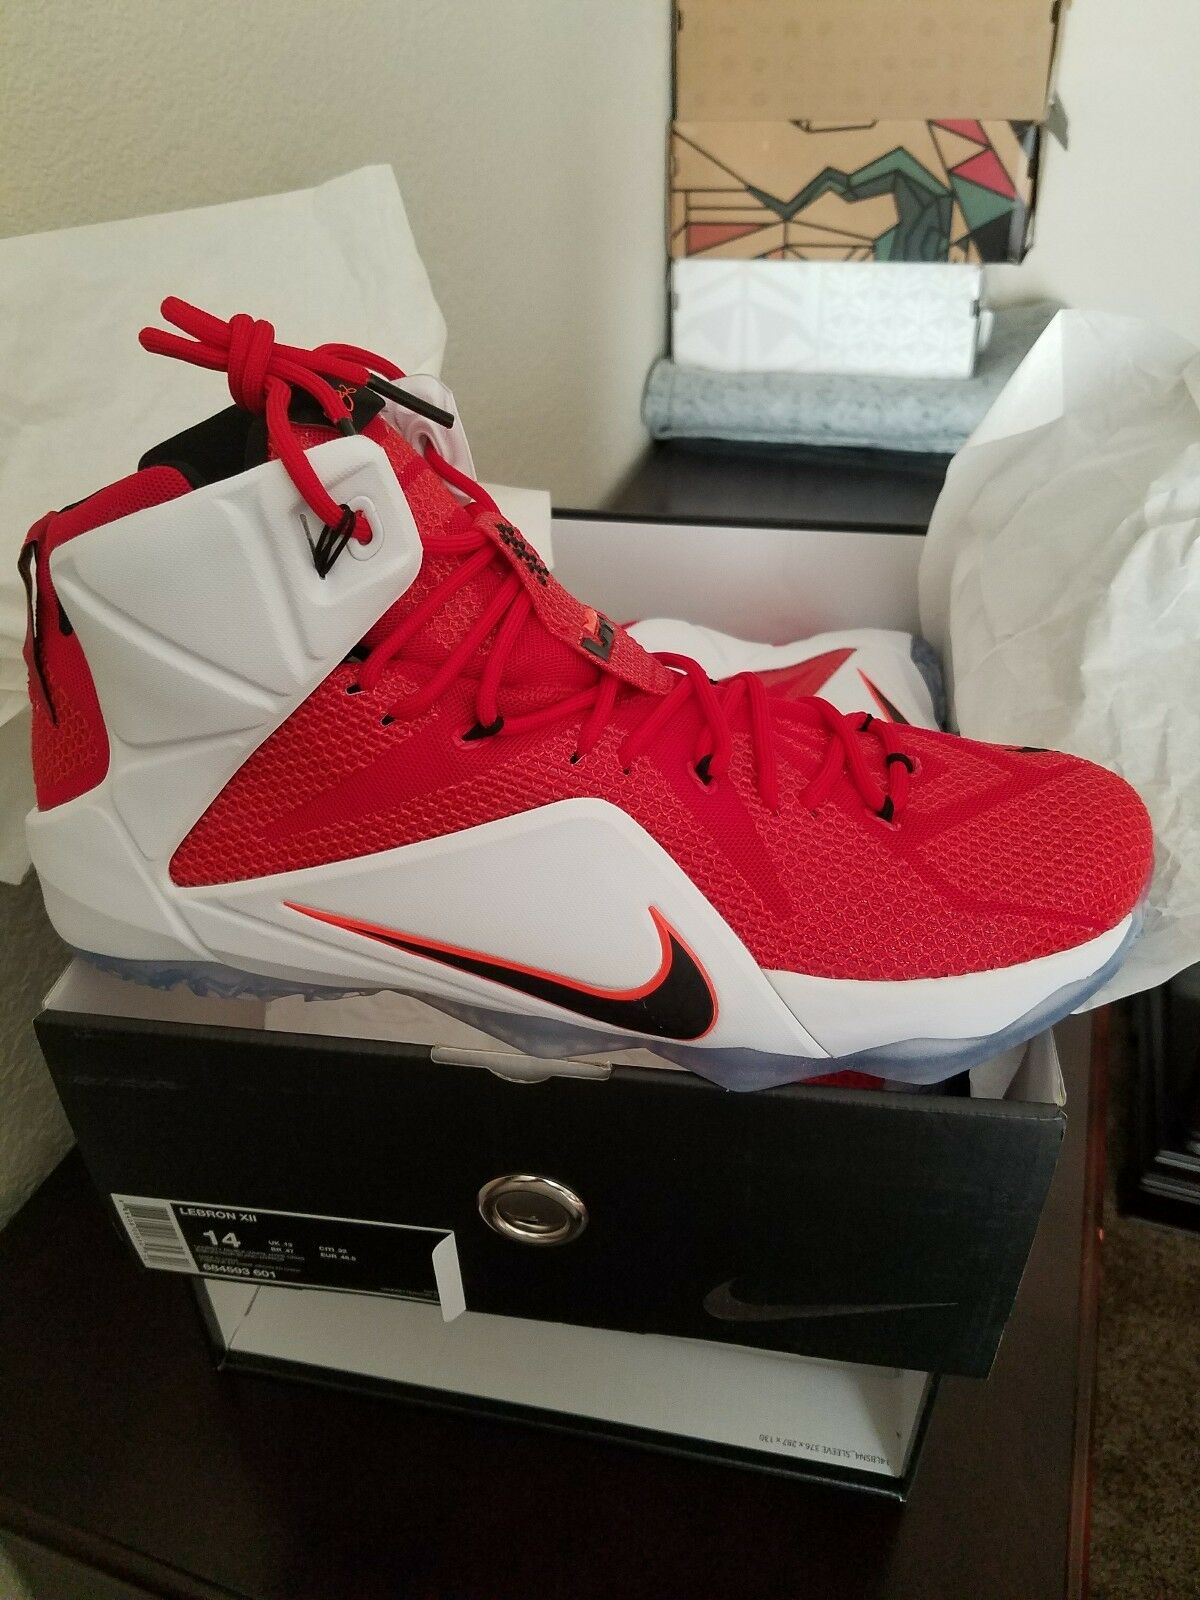 Nike LeBron 12 XII Fire Red Size 14